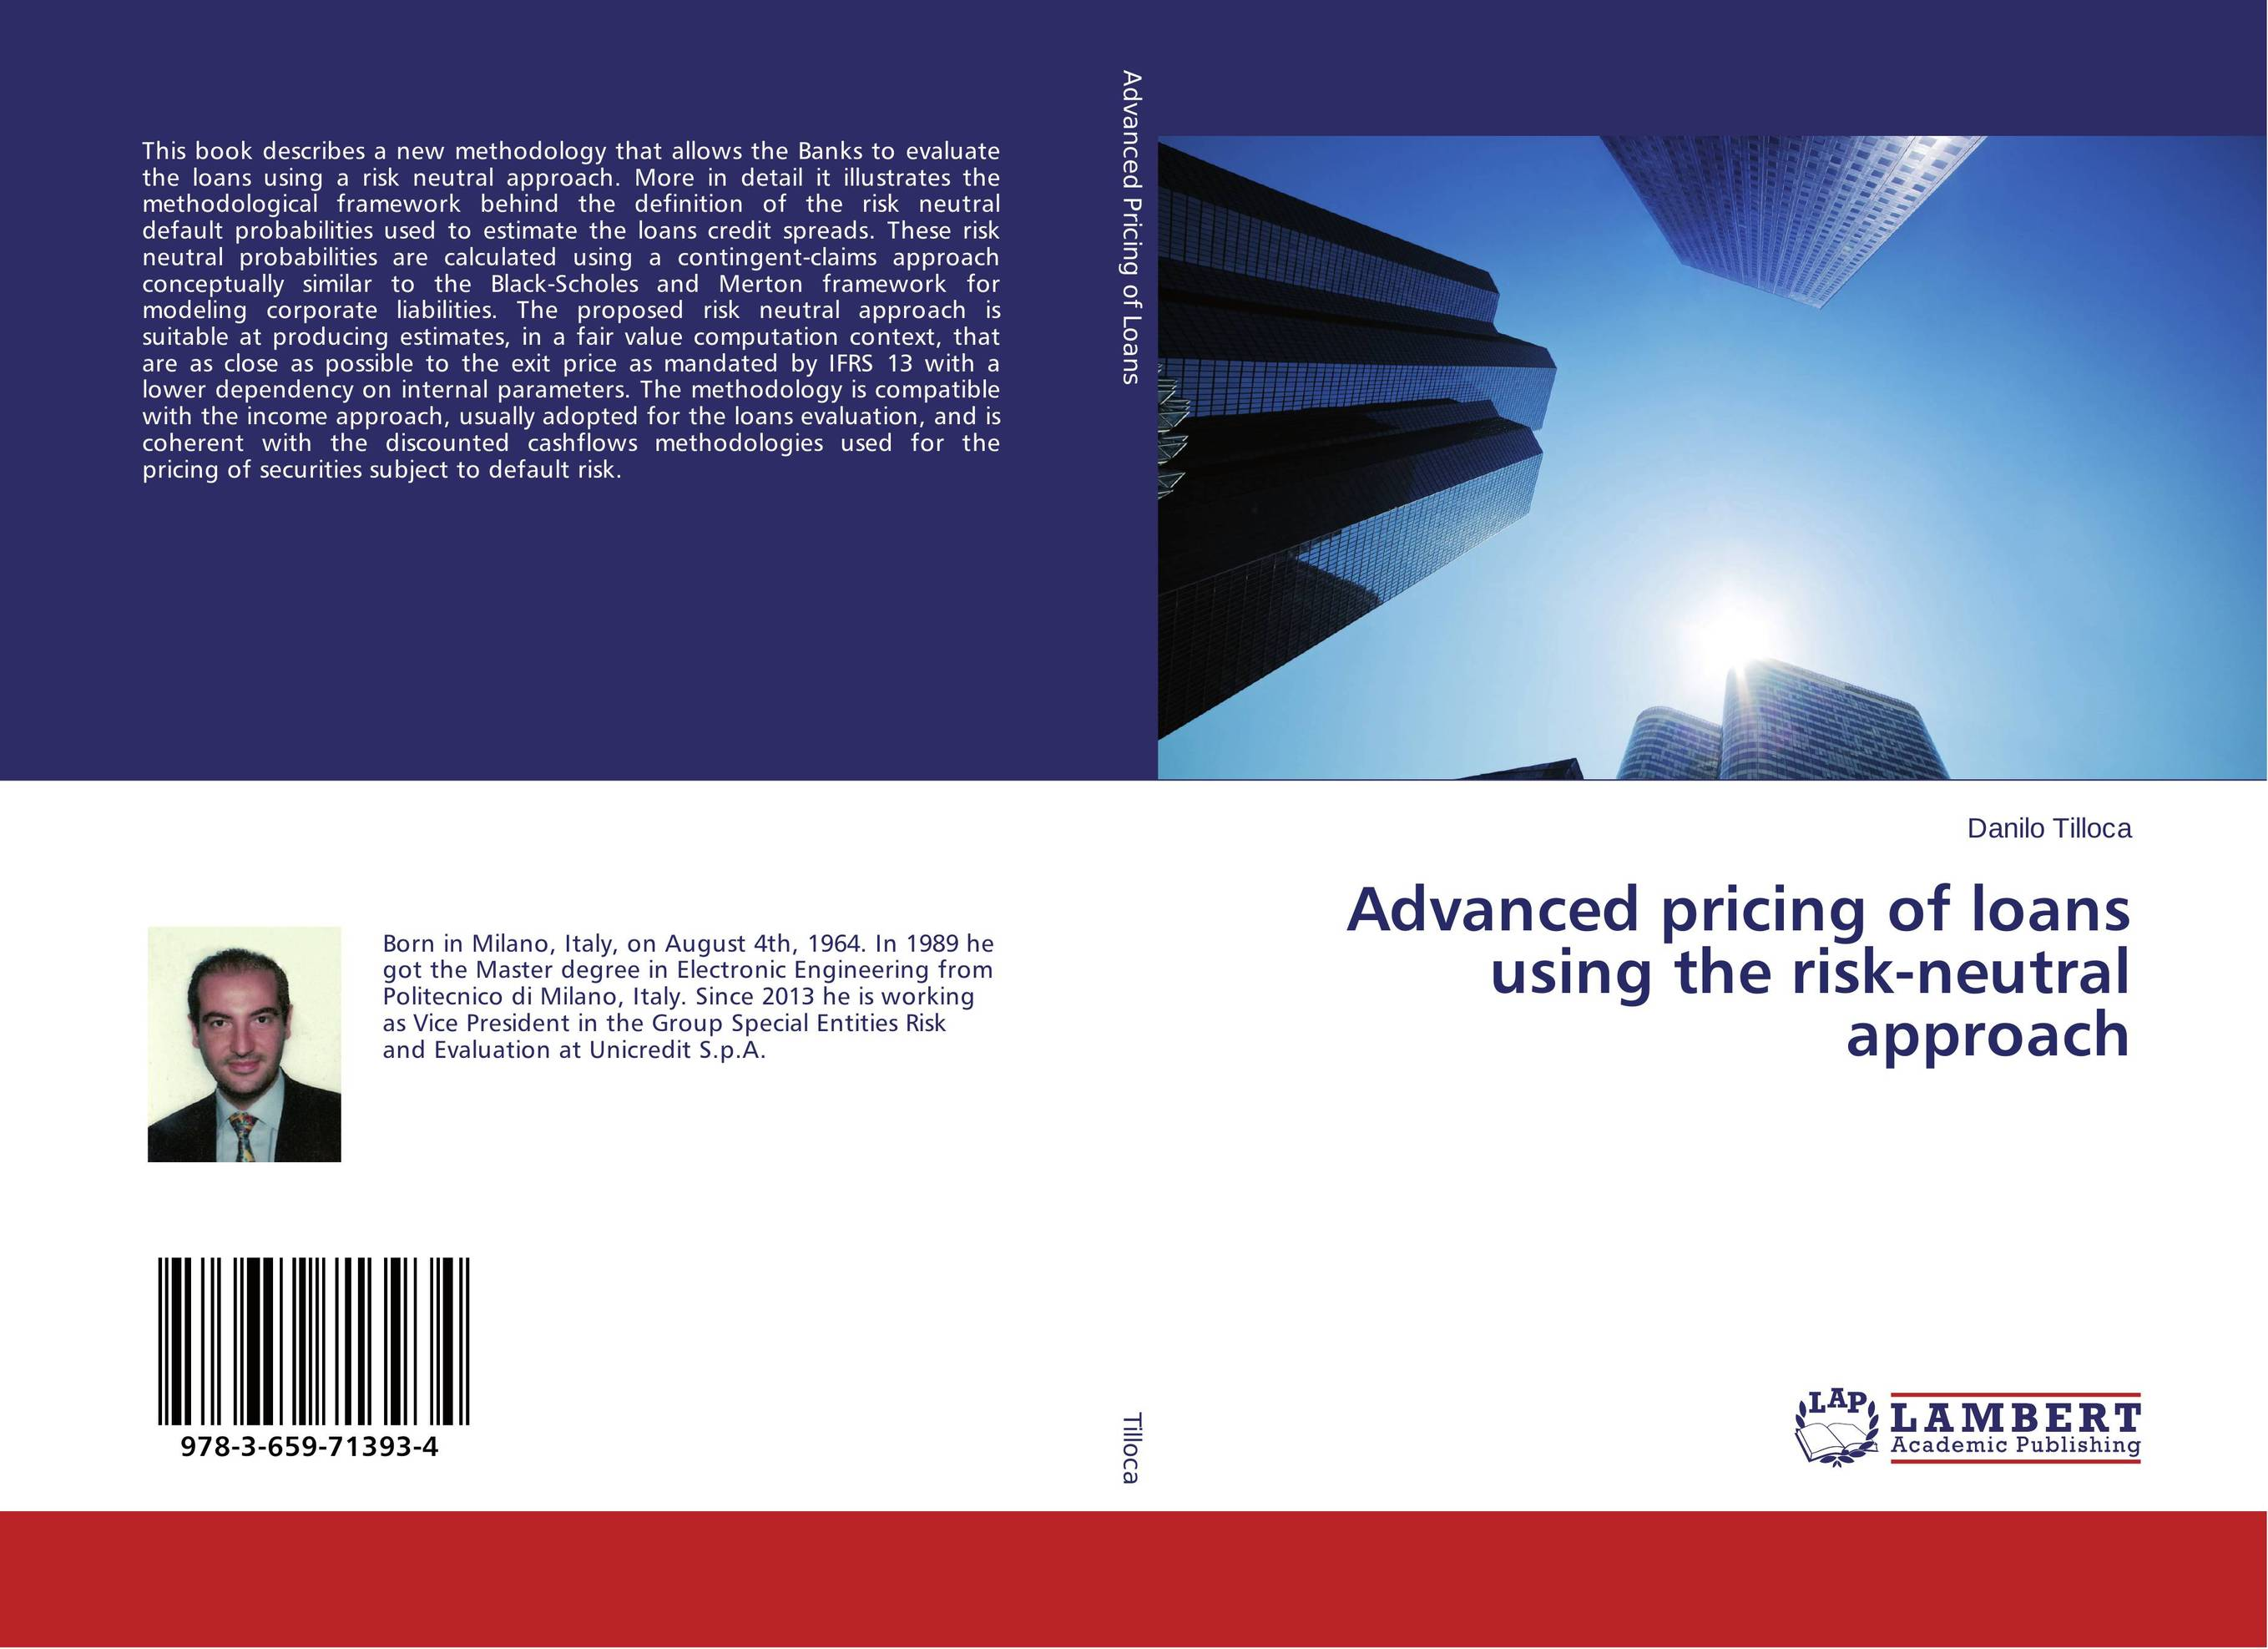 Advanced pricing of loans using the risk-neutral approach aygun nusrat alasgarova financial risk forecasting using neuro fuzzy approach